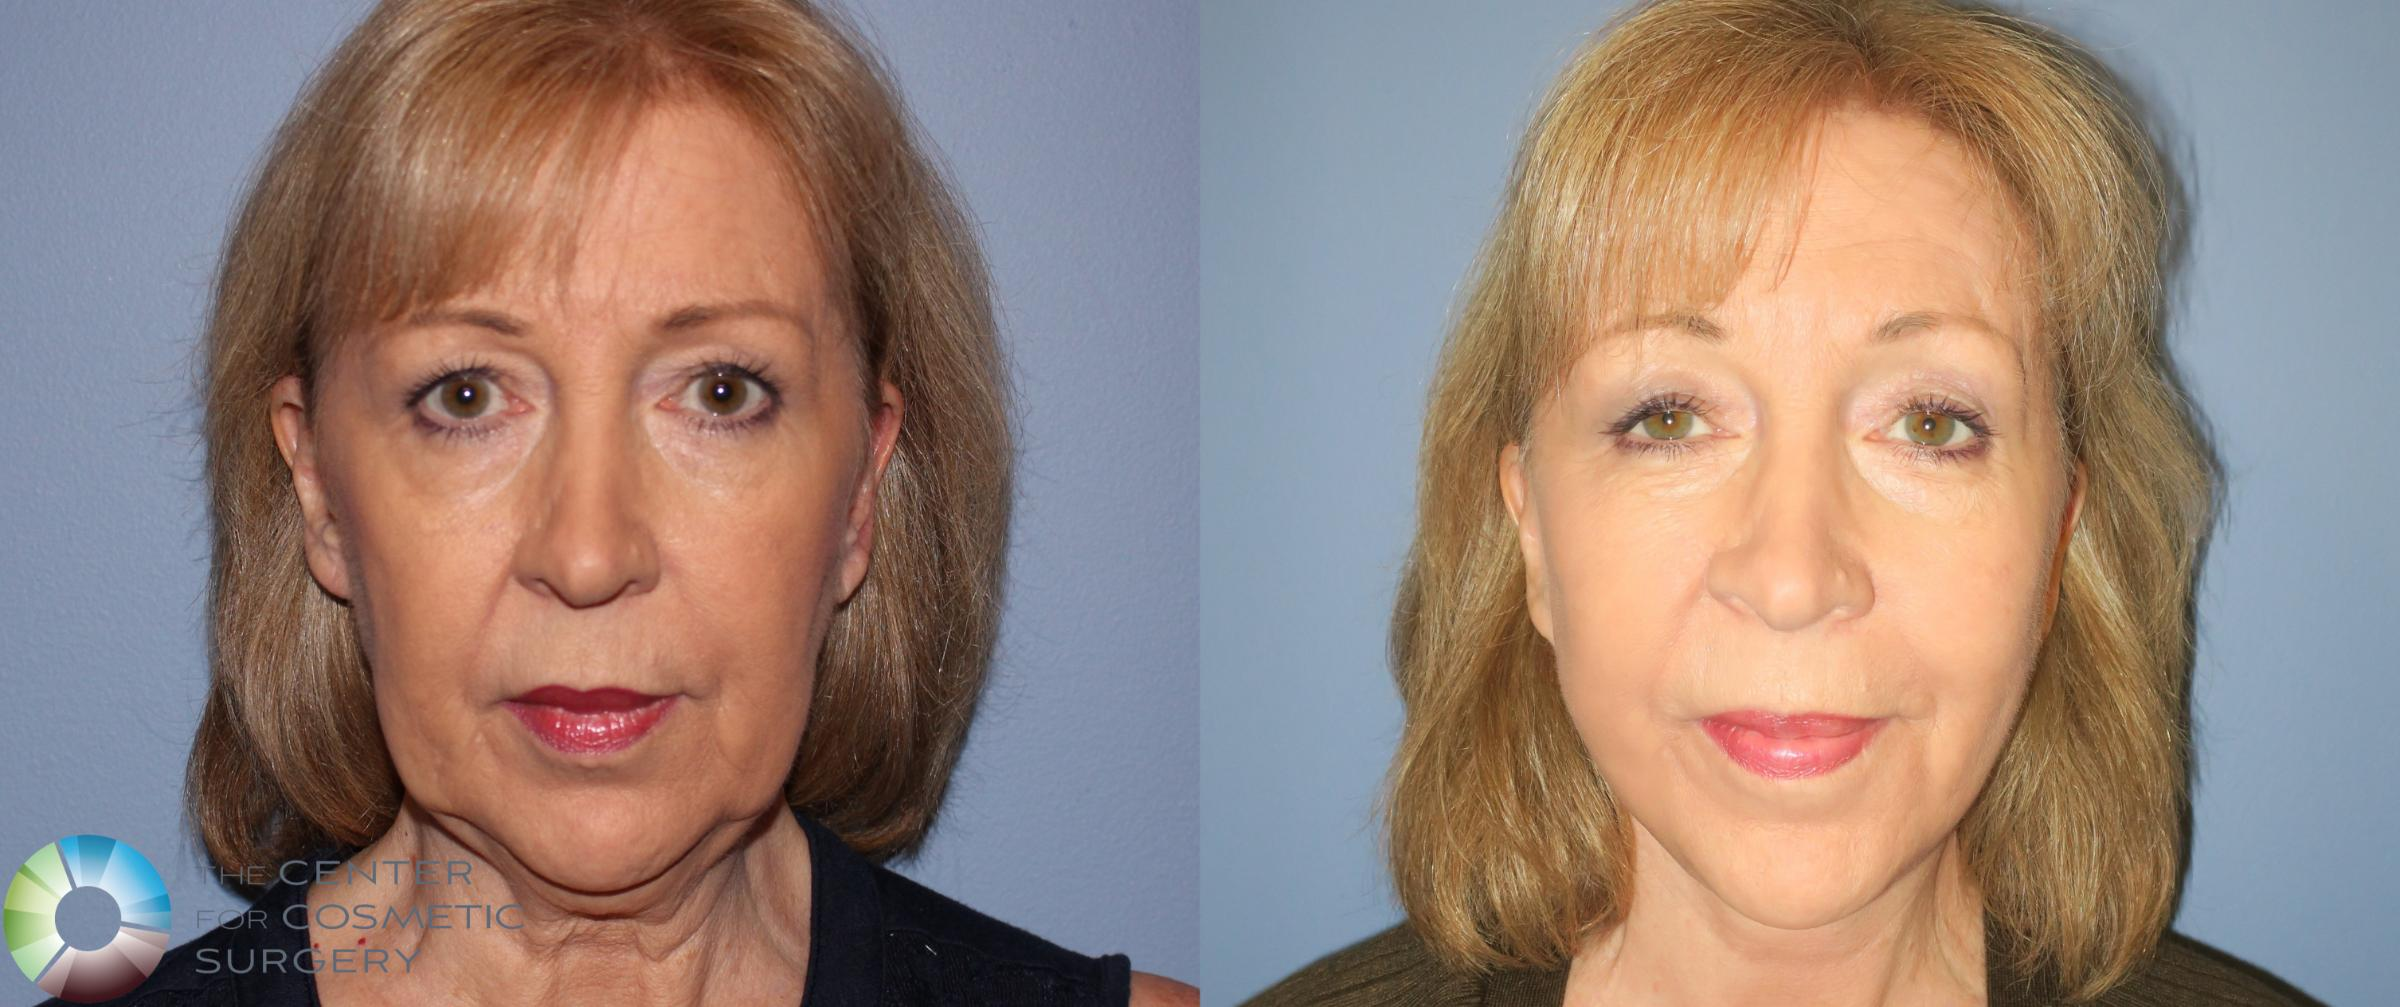 Neck Lift Case 810 Before & After View #1 | Golden, CO | The Center for Cosmetic Surgery